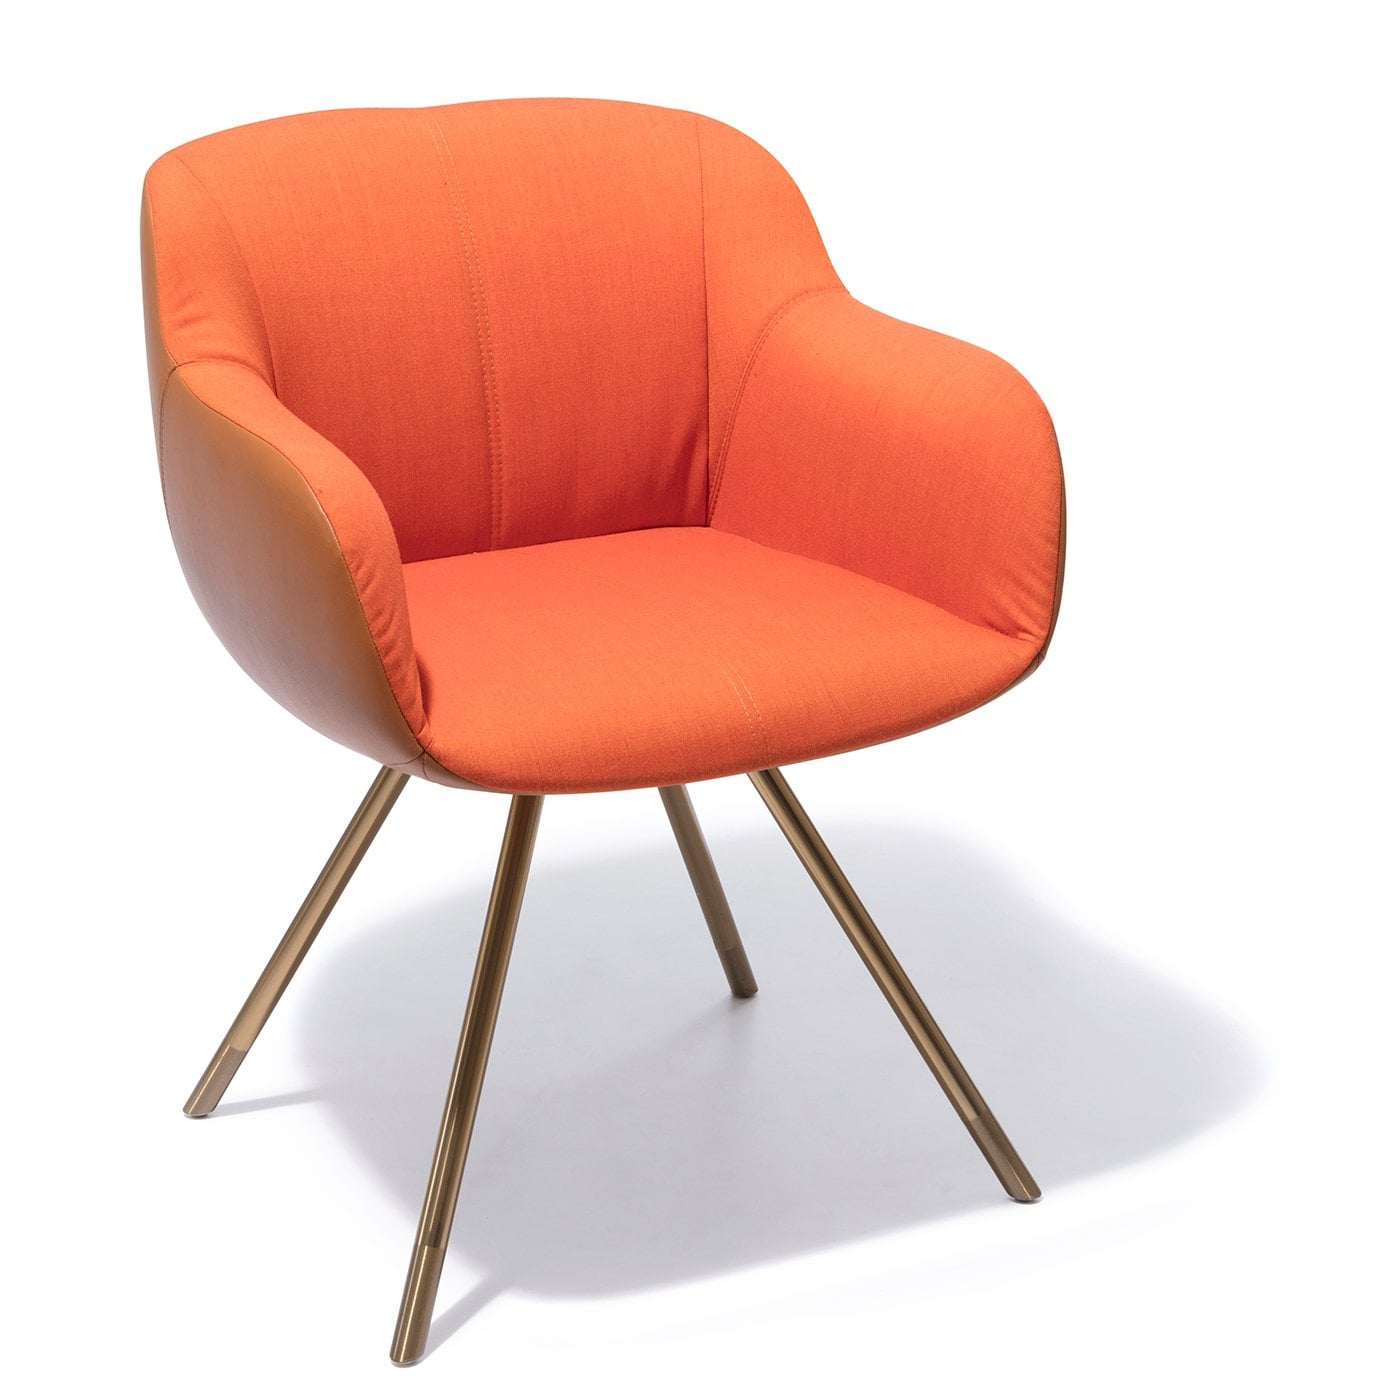 Sessel Cognac Shell Orange Cognac Fabric Leather Armchair Rosenthal Porcelain